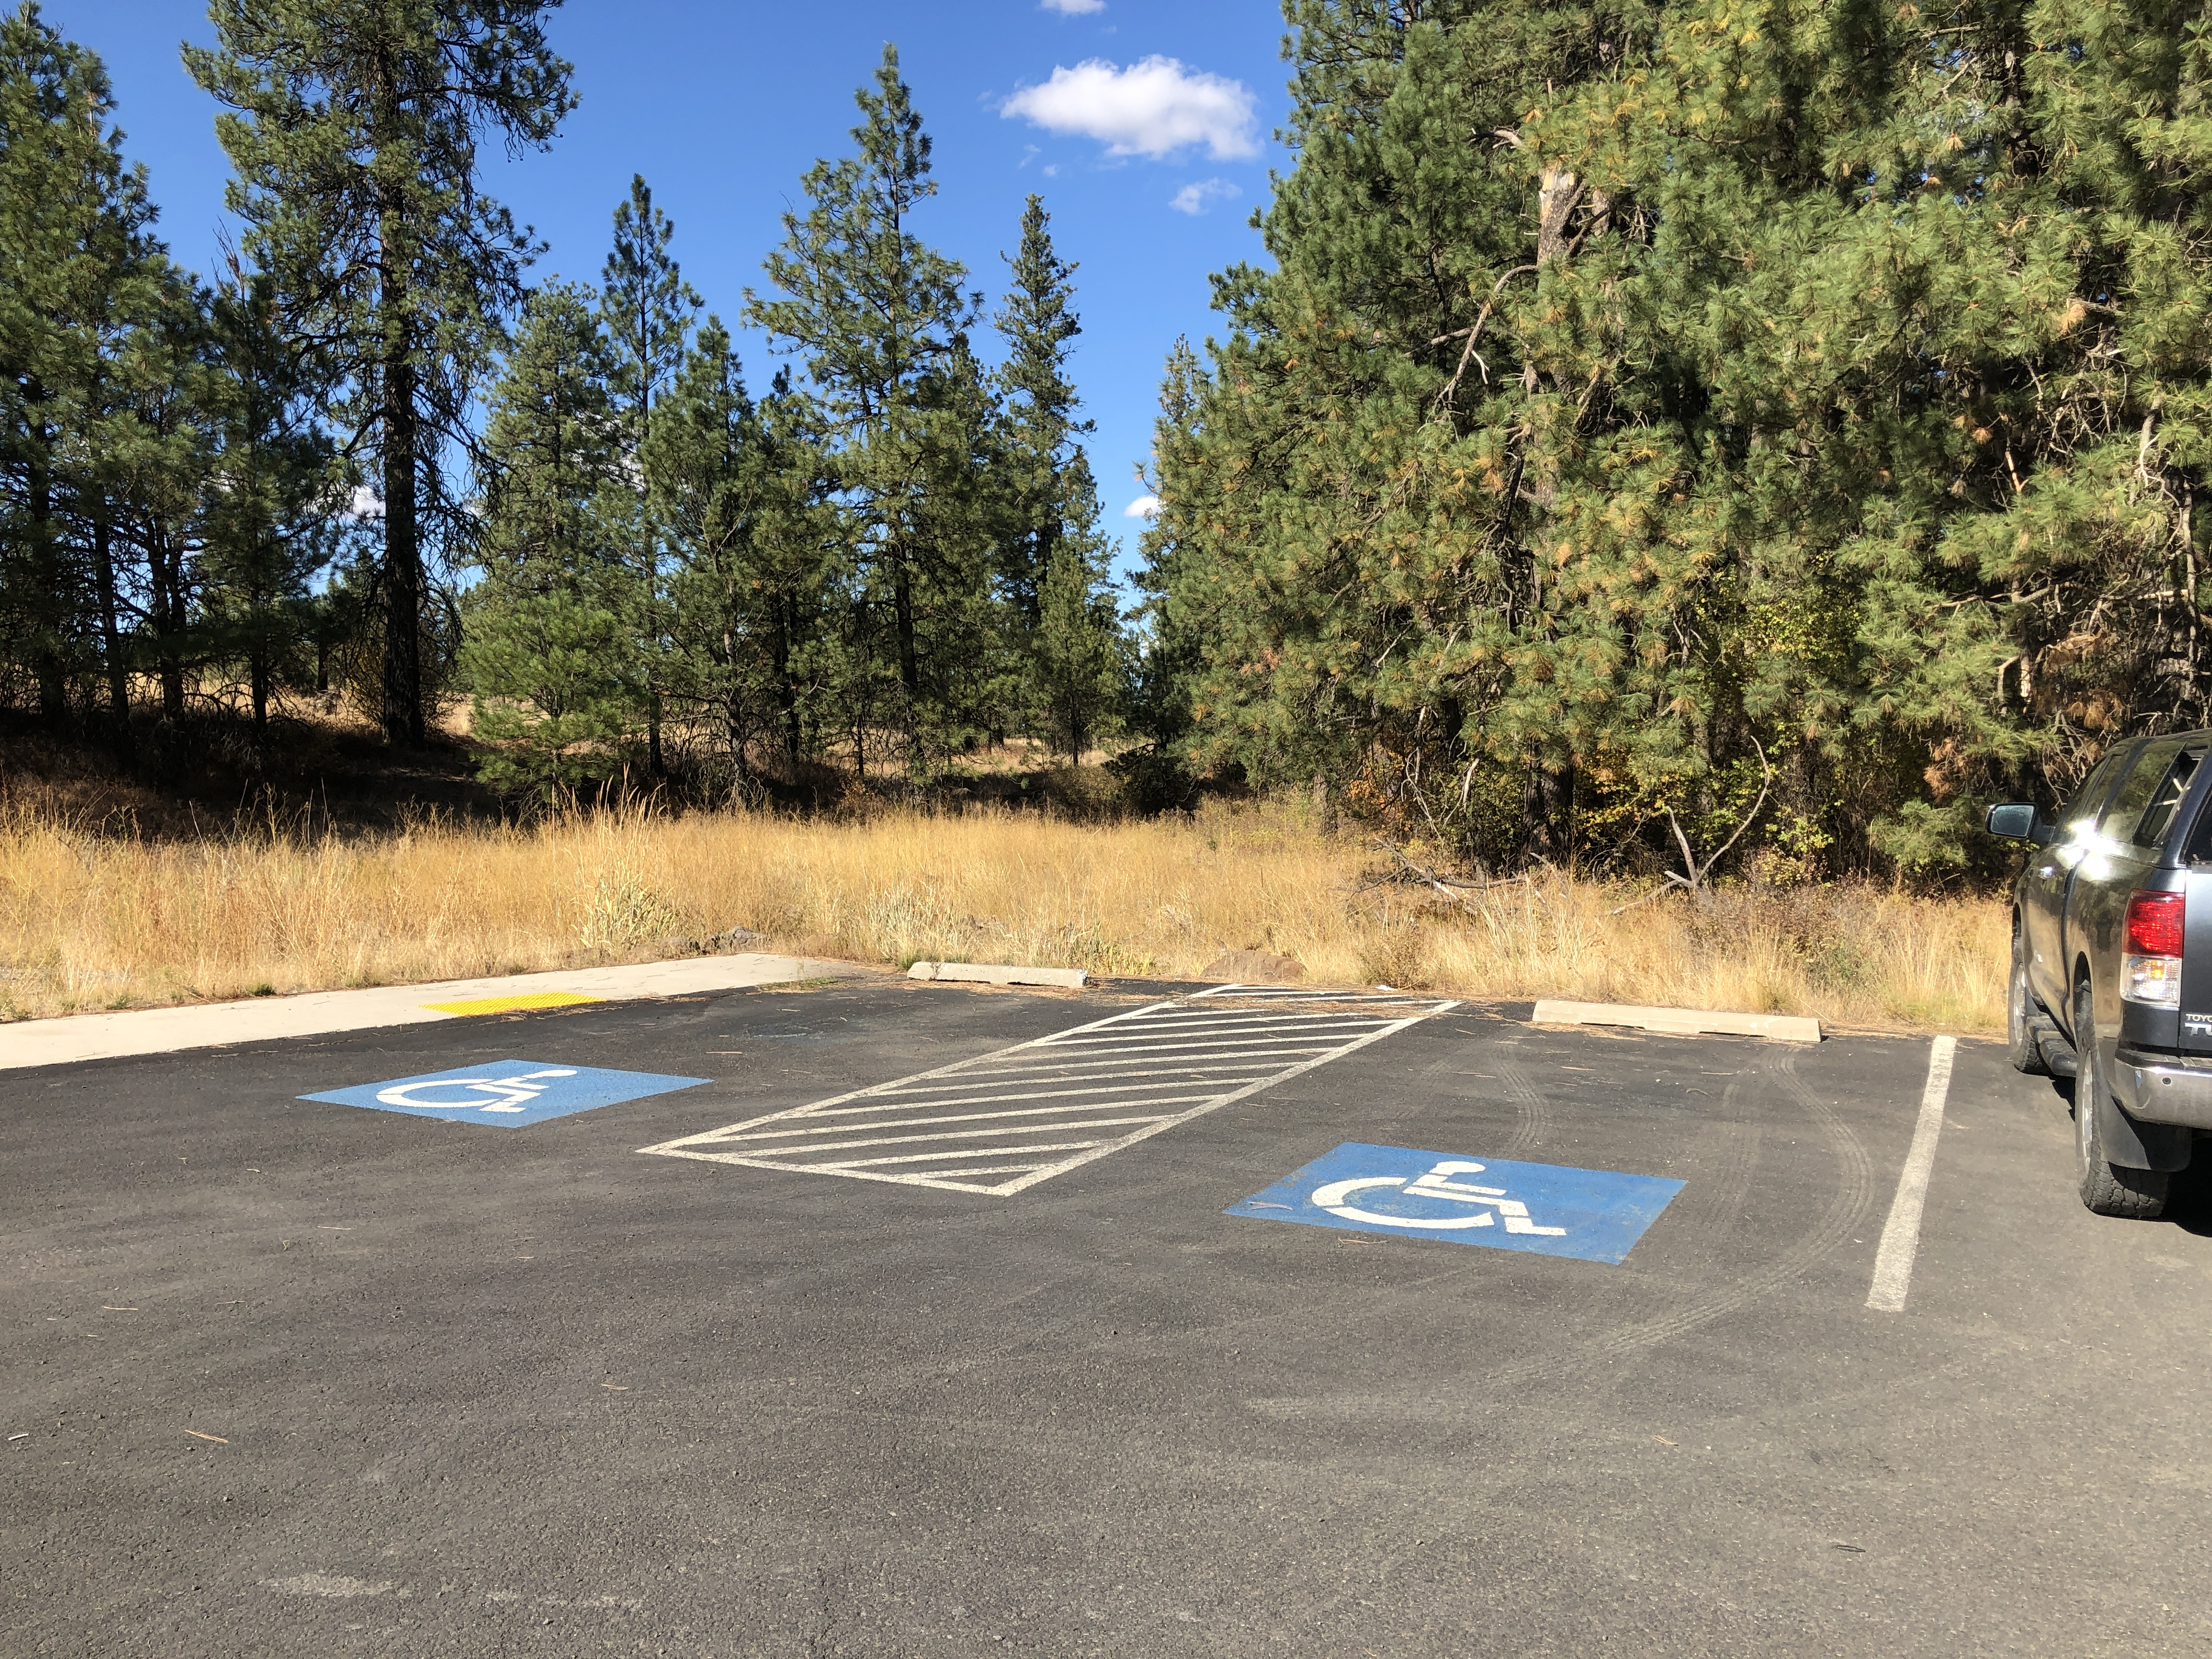 parking lot with 2 accessible spaces and van lift area in between